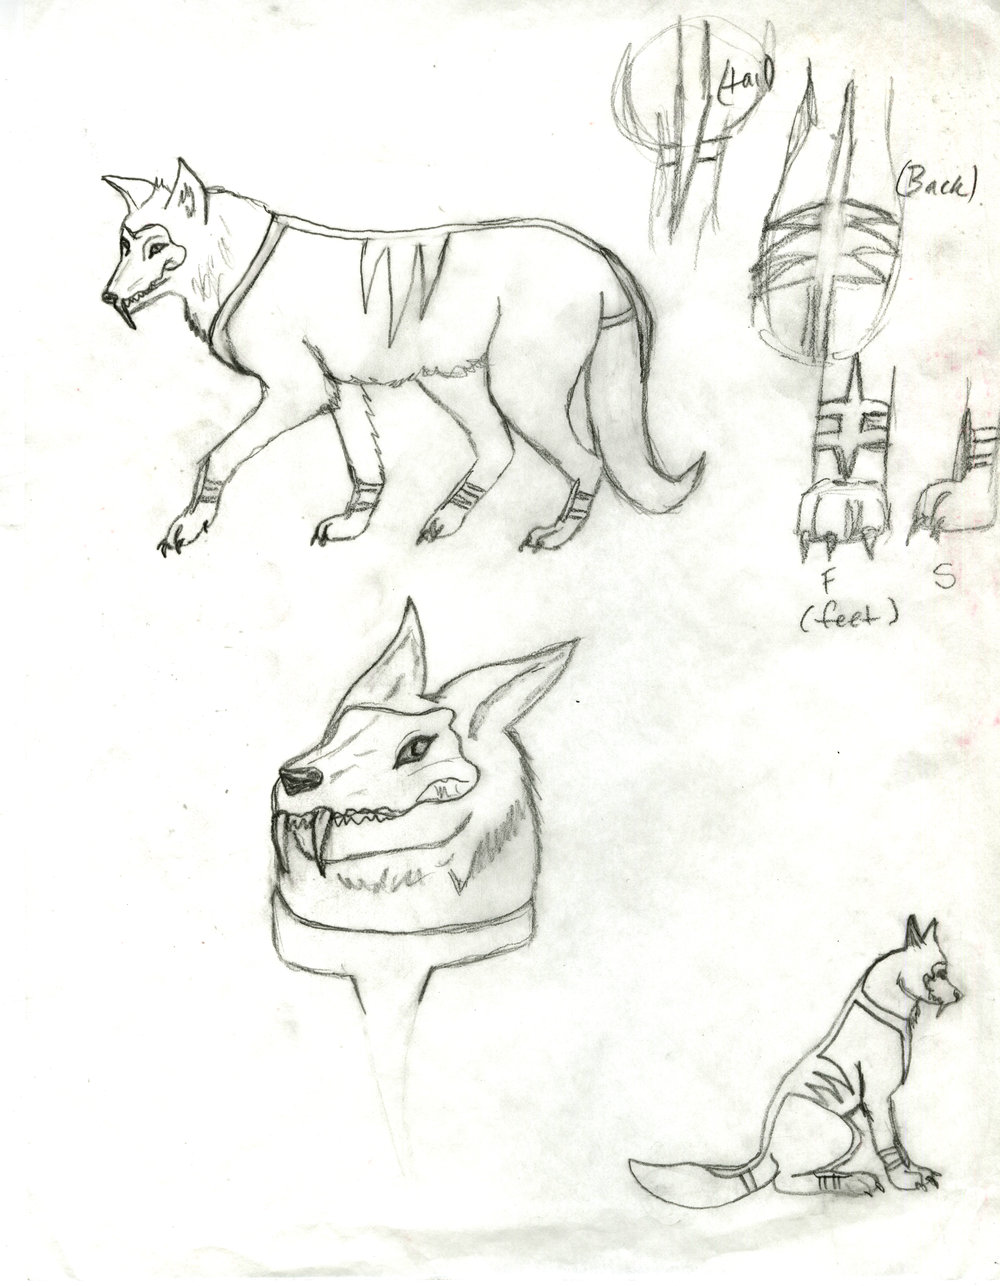 Chantal-Benitez-Frank-Case-Study-Sketches